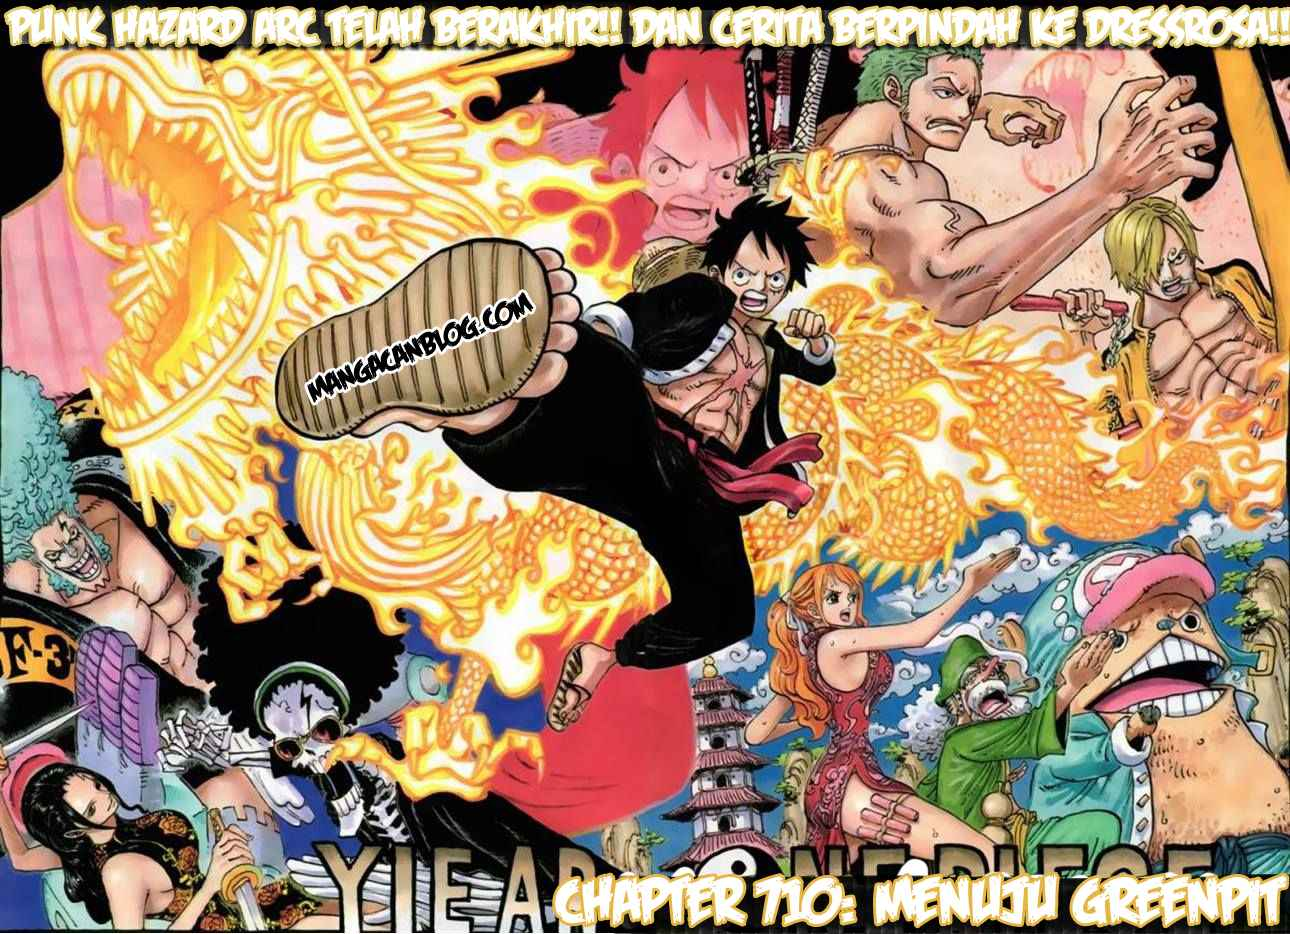 Komik one piece 710 711 Indonesia one piece 710 Terbaru |Baca Manga Komik Indonesia|Mangacan